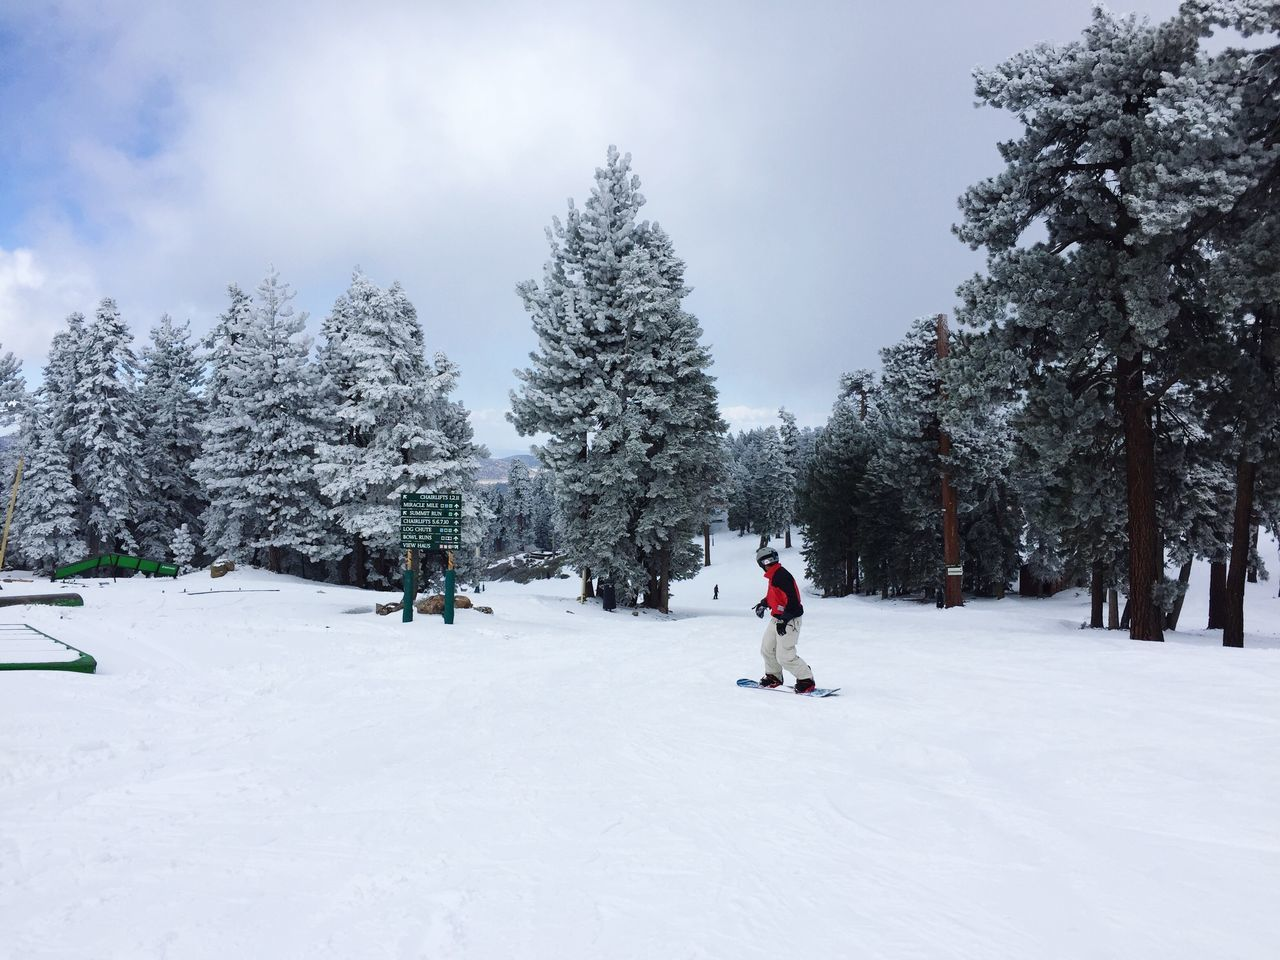 Snow in spring 😍😍🙌🏼🙌🏼 Urban Spring Fever Bigbear Bigbearlake Snowsummit BigbearCalifornia Bigbear California Bigbearcity Snow Snow ❄ Snowing Snow Day Snowboarding Snow Covered California Big Bear Big Bear Lake Big Bear Mountain Big Bear Lake CA Alternative Fitness